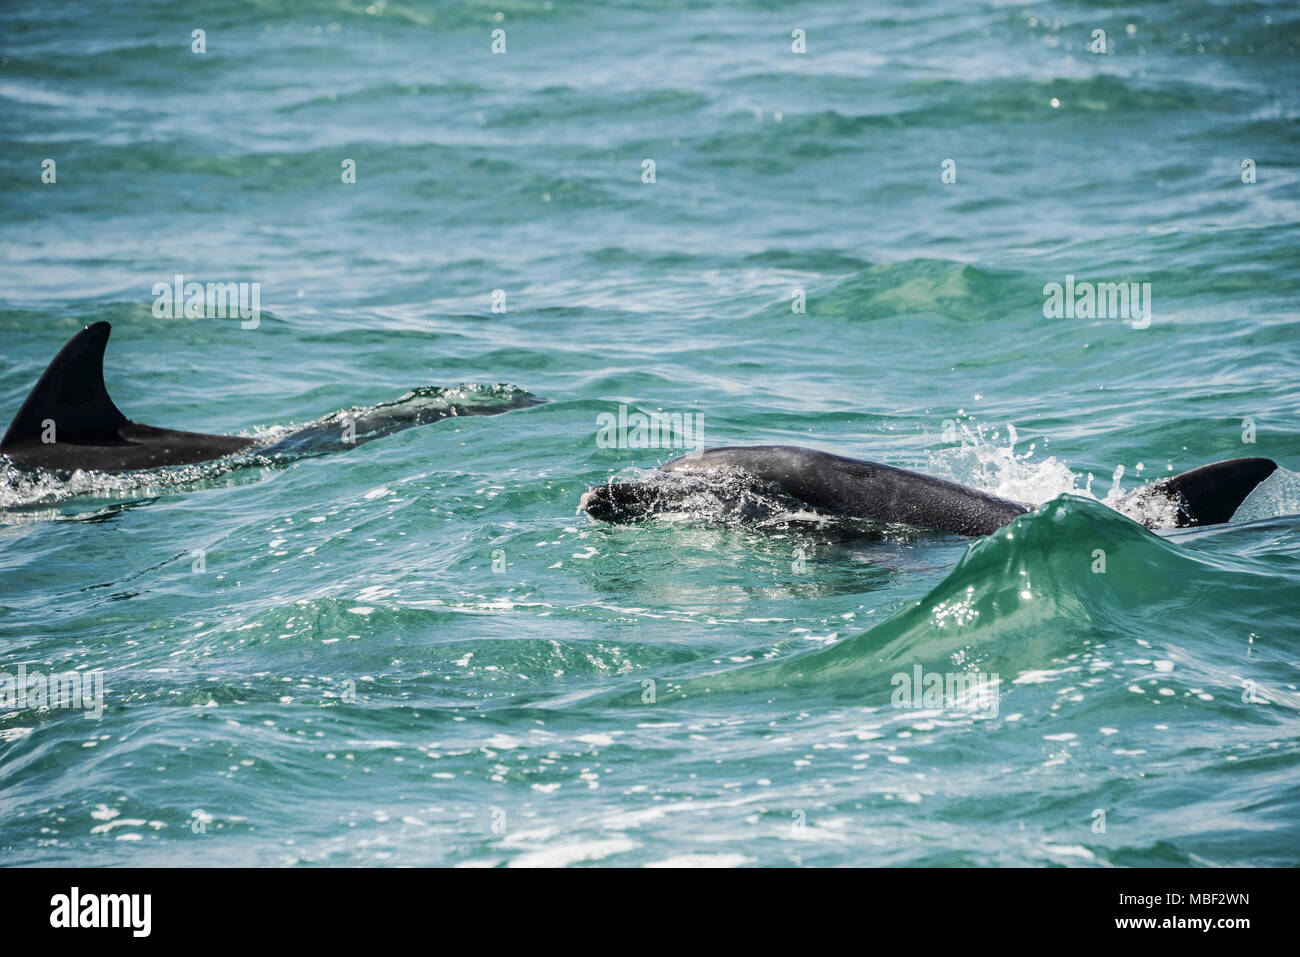 Indo-Pacific bottlenose dolphin (Tursiops aduncus) - Stock Image